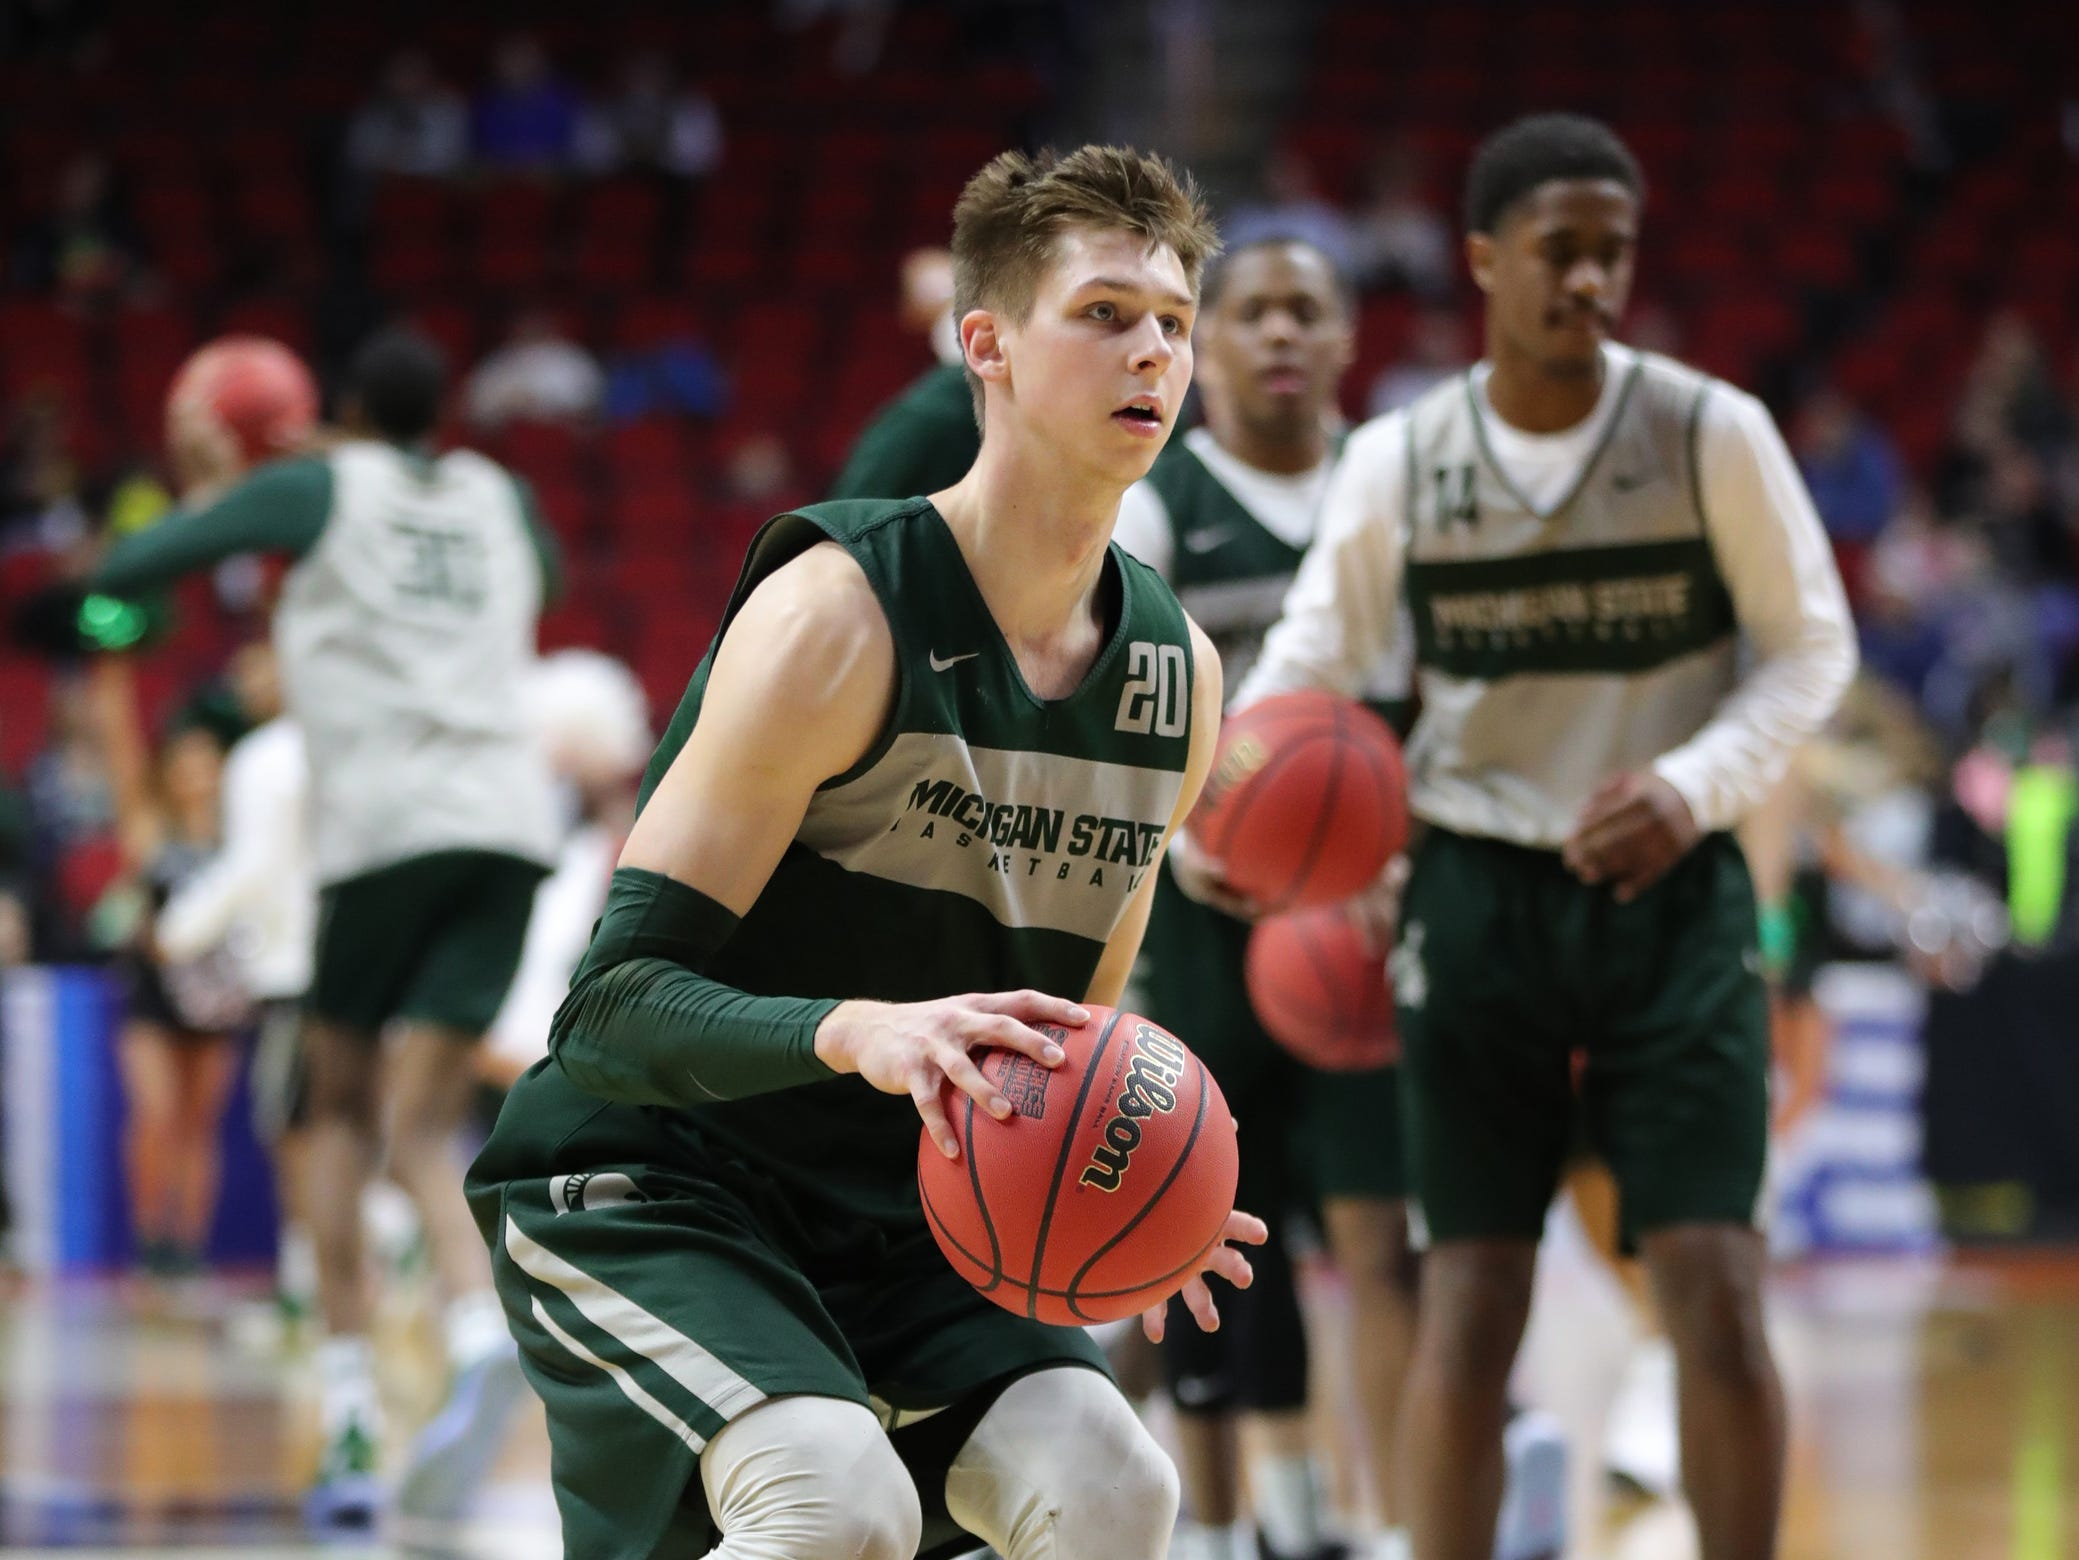 Michigan State guard Matt McQuaid goes through drills as his team prepares for the first-round NCAA tournament game against Michigan State on Wednesday, March 20, 2019 at Wells Fargo Arena in Des Moines, Iowa.